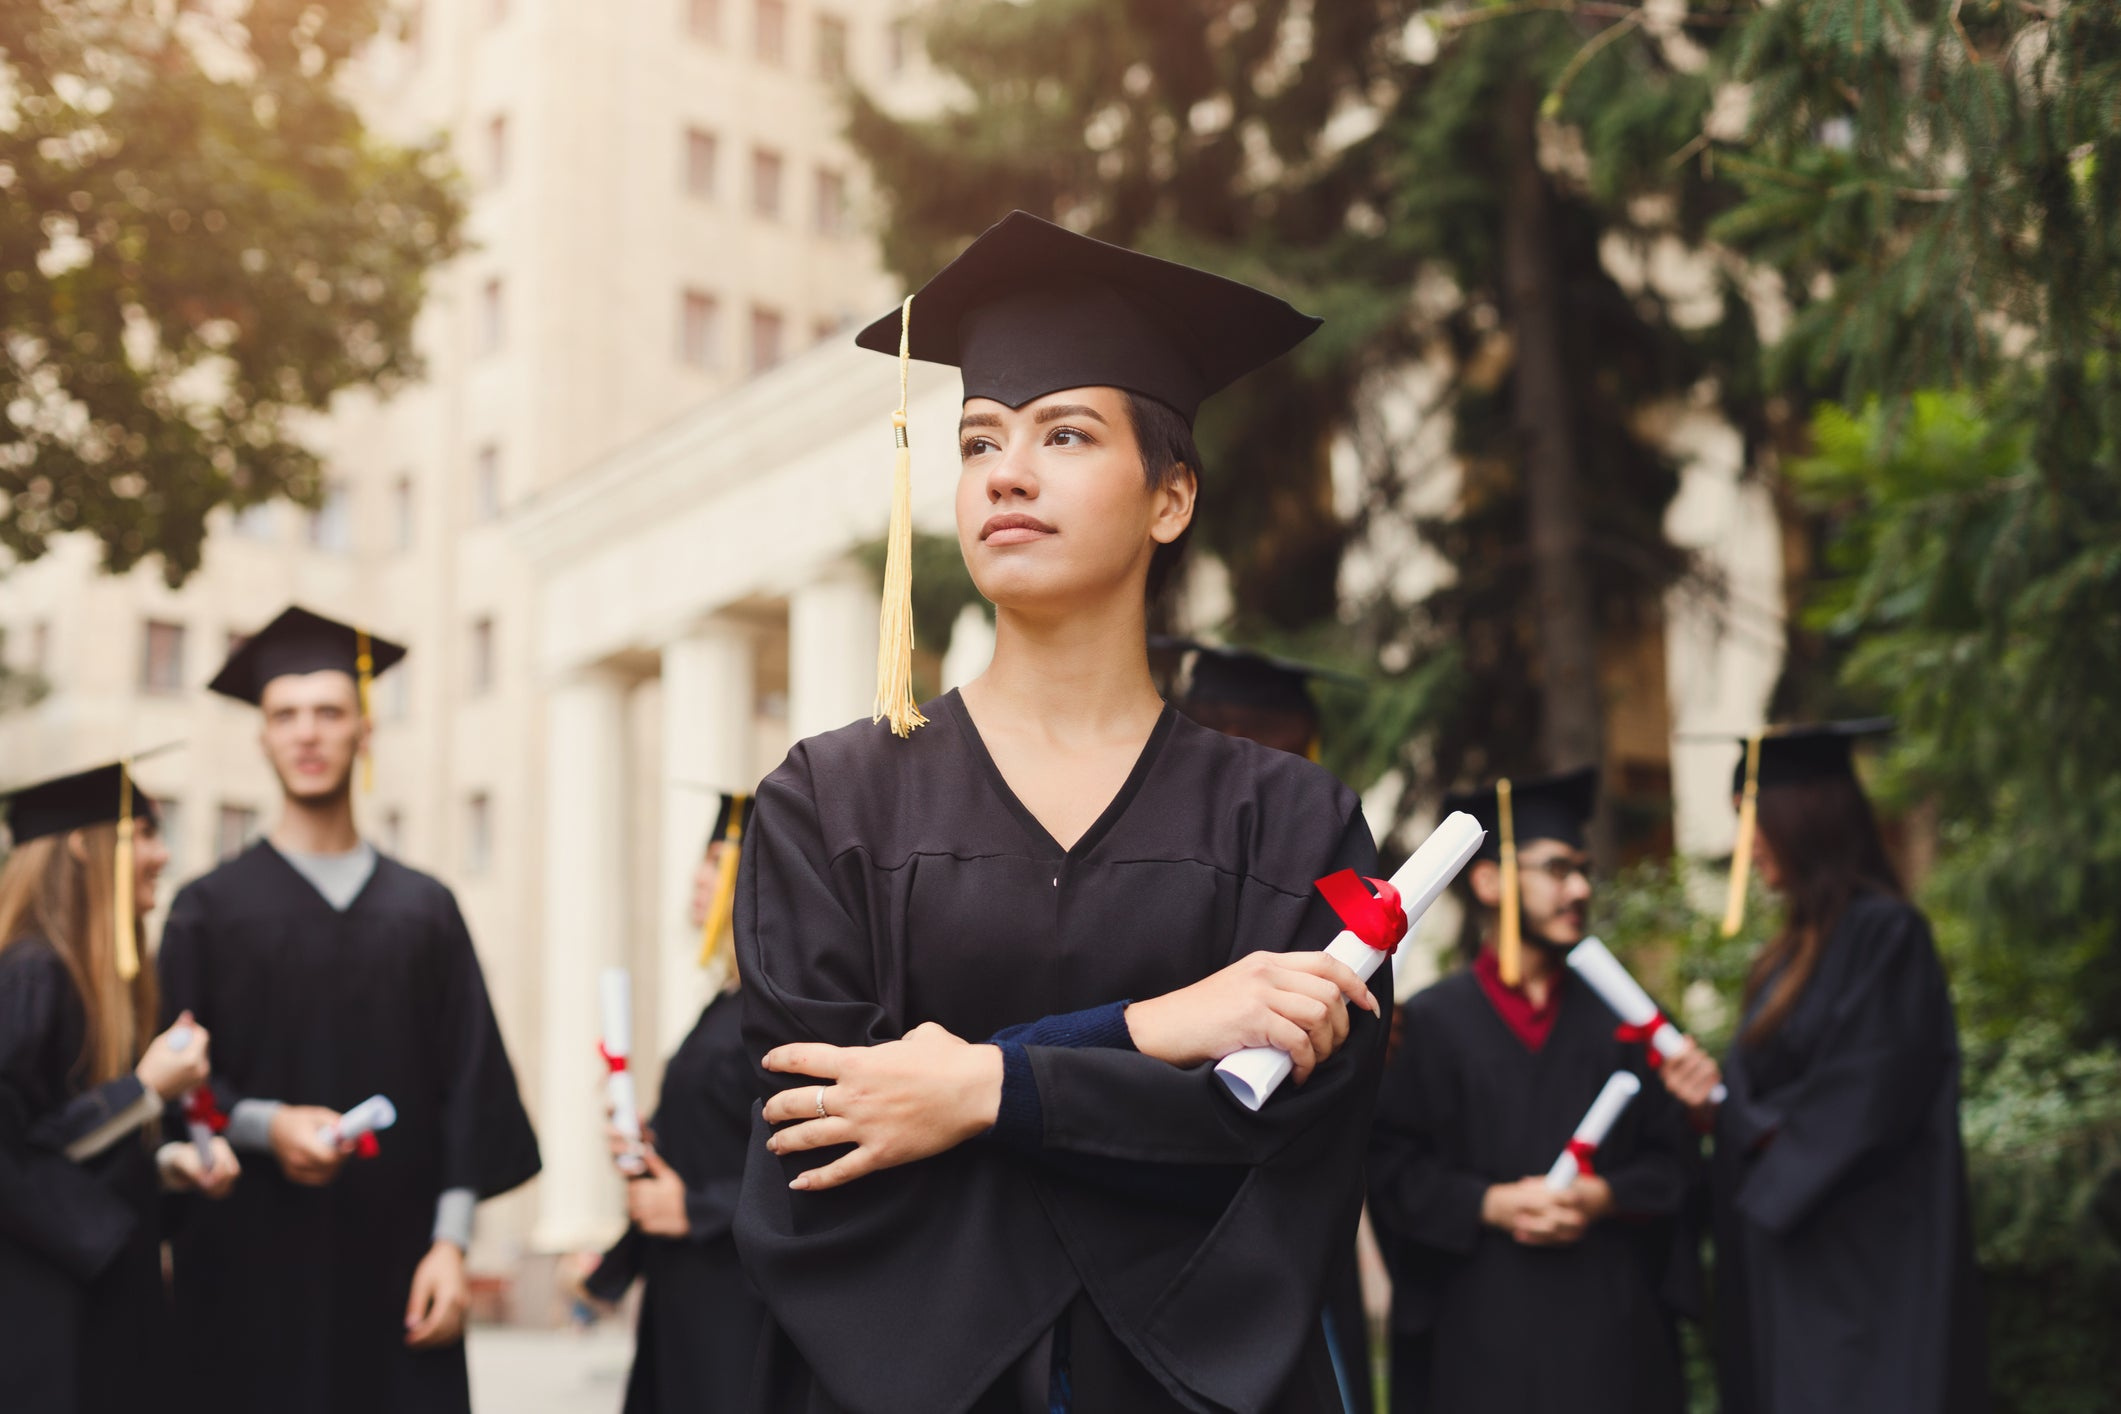 A female college graduate holding her diploma and looking serious.